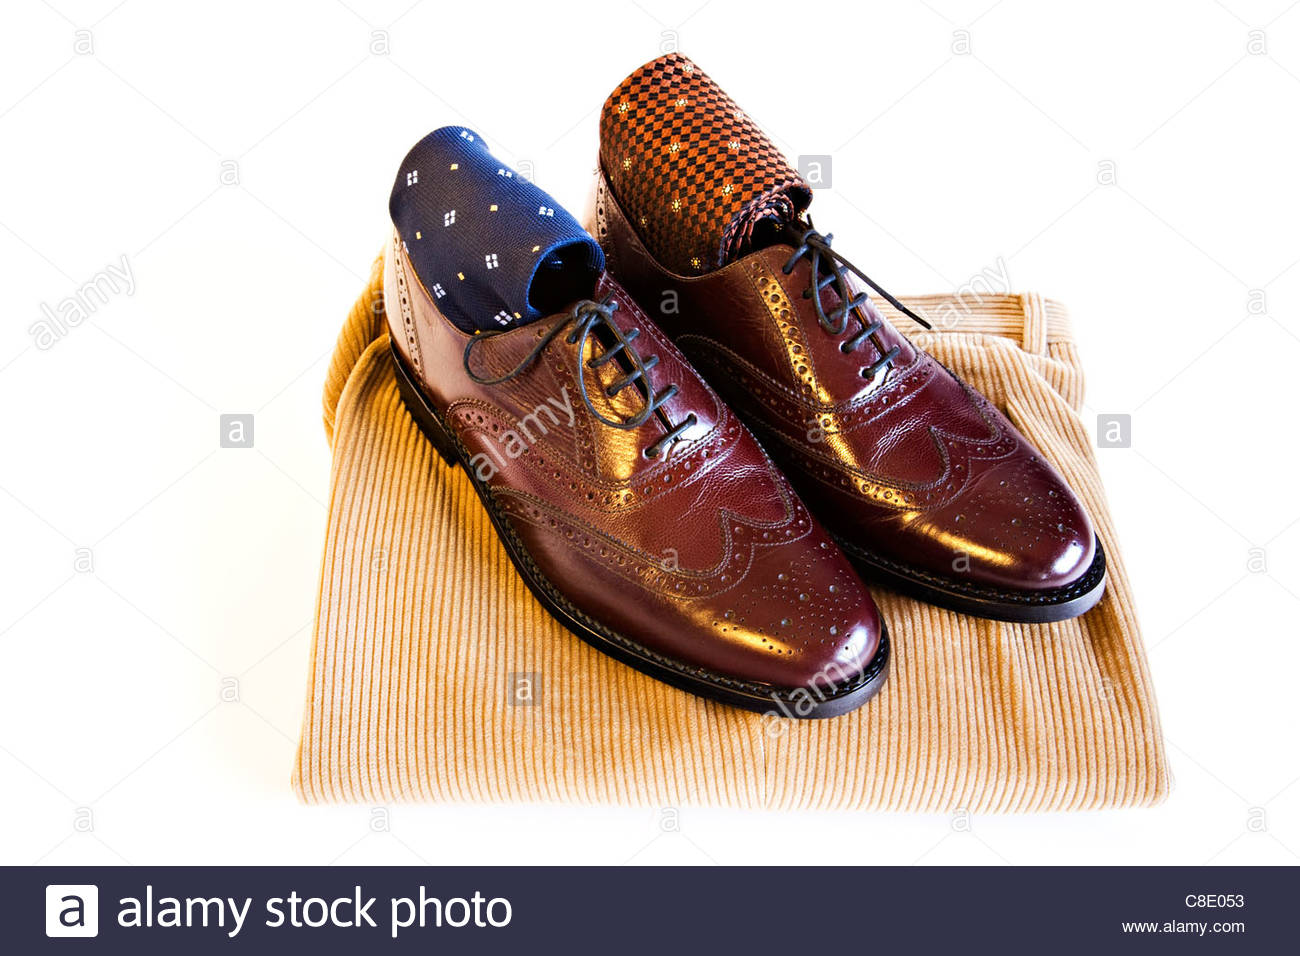 Men's brown polished leather lace up shoes with ties and trousers on white background - Stock Image